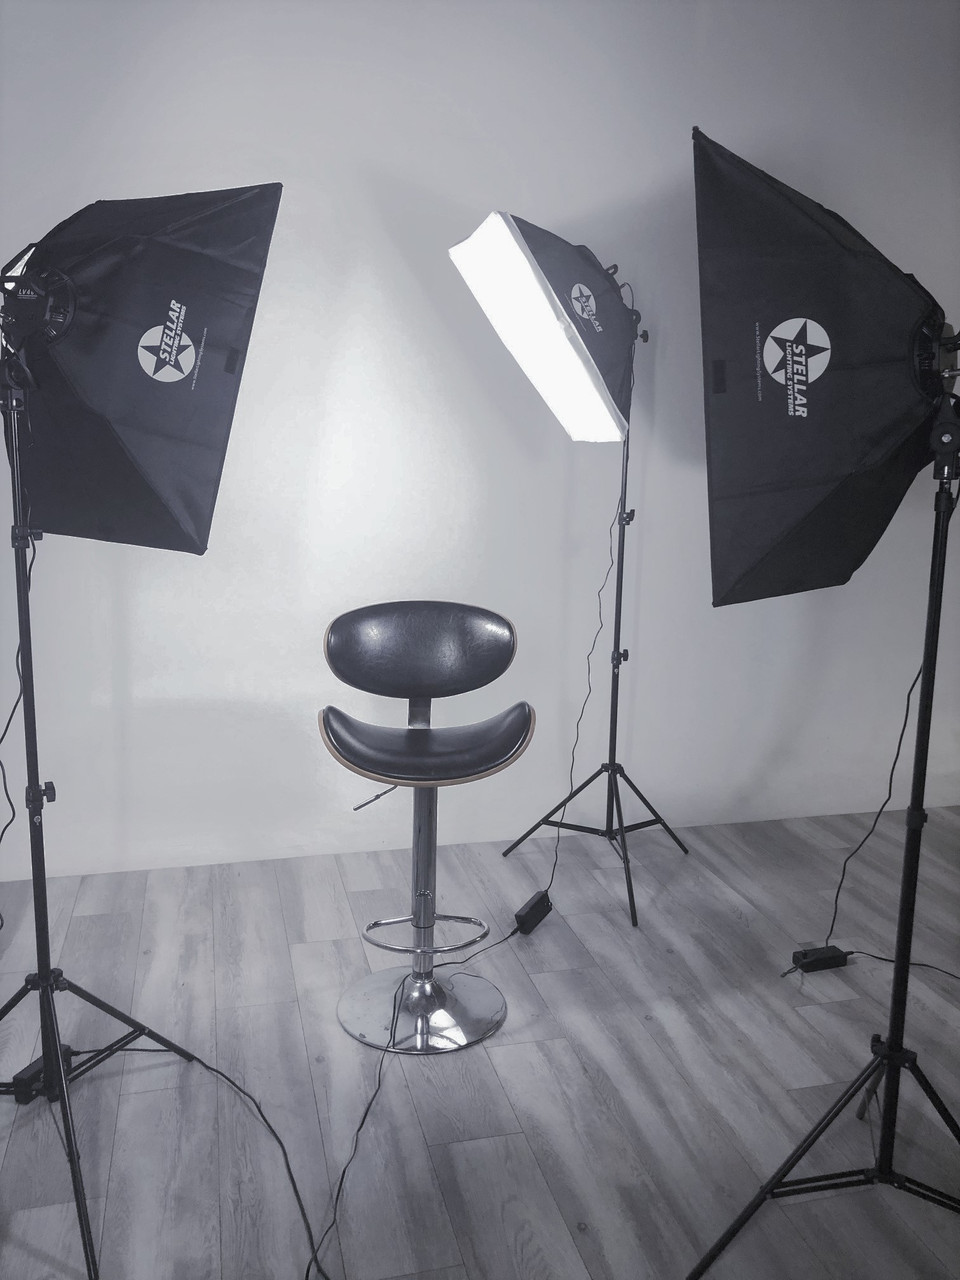 Stellar Orion, our verion of 3-Point Lighting Soft boxes.